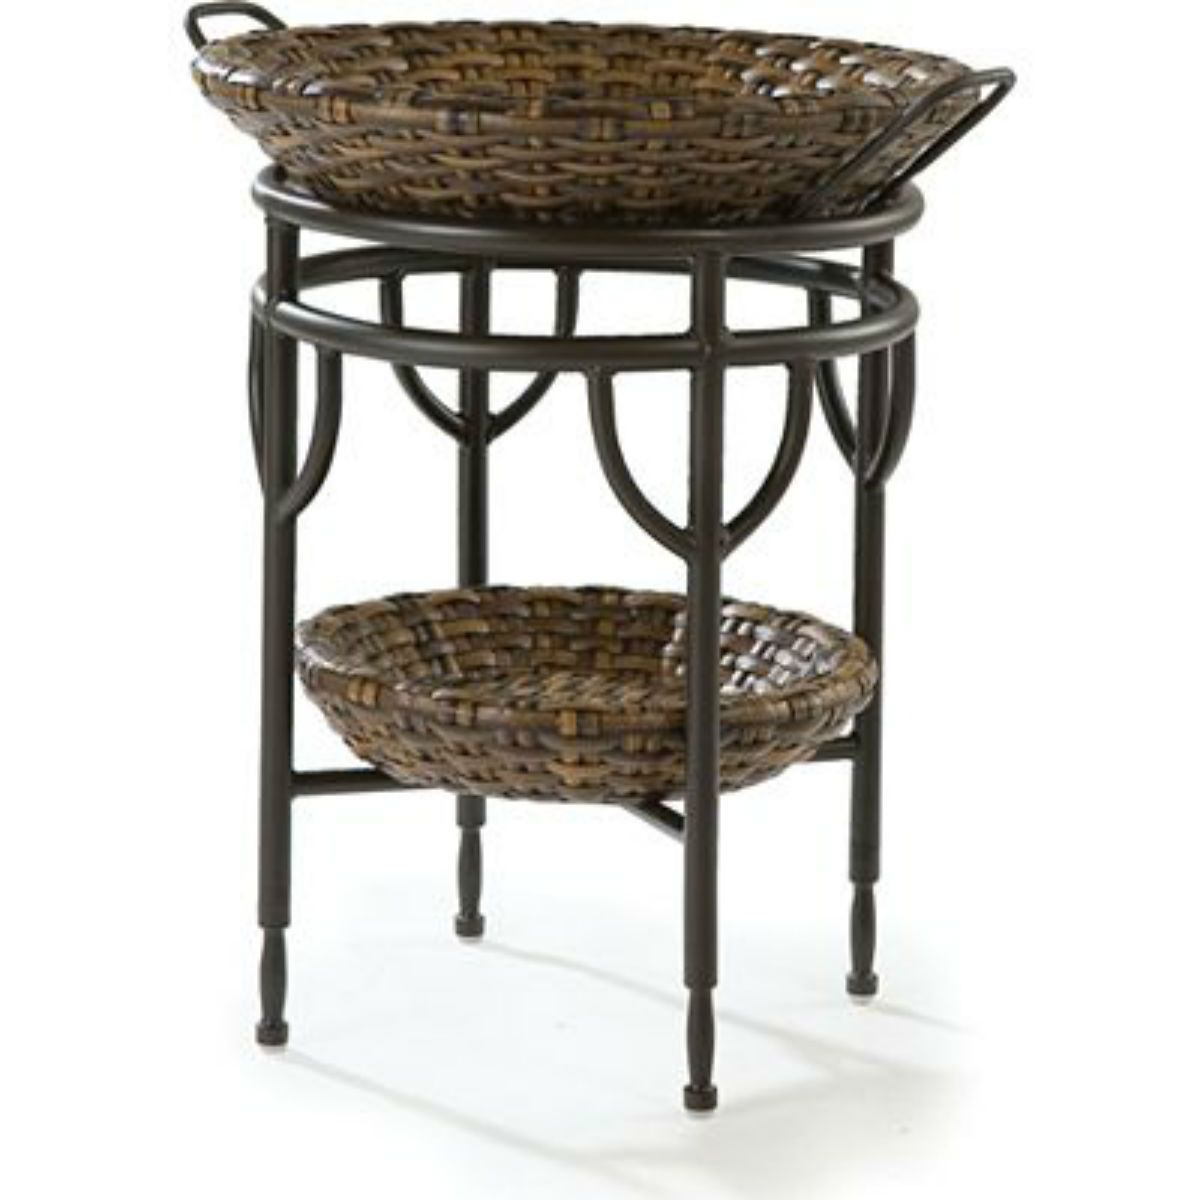 bali hand woven synthetic wicker round accent table french storage thresholdtm dining room chairs dressing frosted glass cylinder lamp inch wide sofa clear coffee oriental ceramic